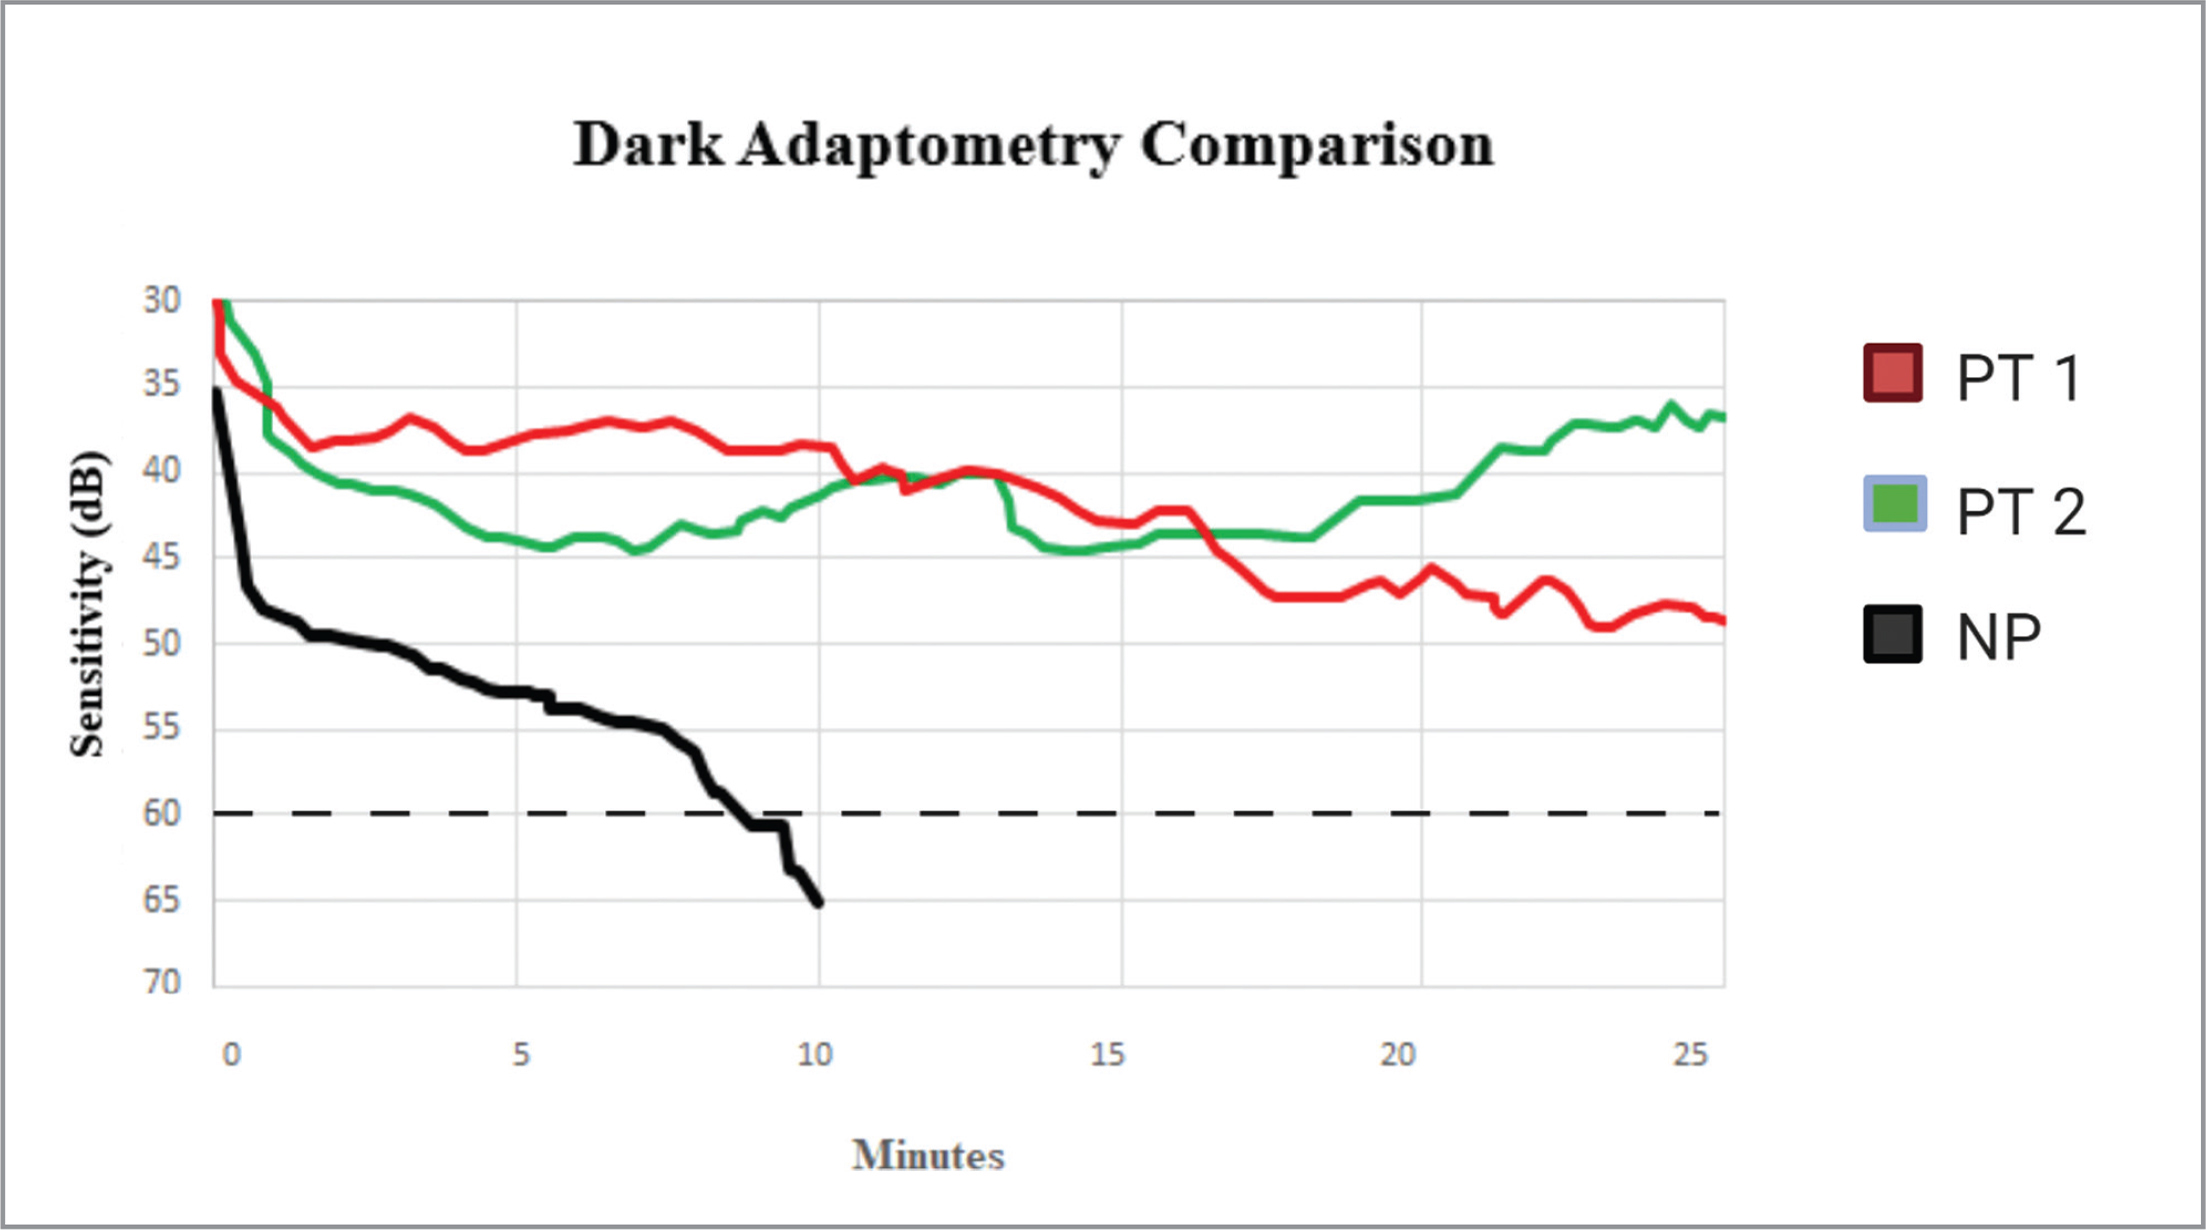 Comparison of dark adaptometry results for Patients 1 and 2 compared with normal control. Demonstrates severely delayed dark adaptation for study patients. Rod intercept time for the normal control was 8 minutes. Patients 1 and 2 did not reach rod-intercept time at 30 minutes when testing was stopped.